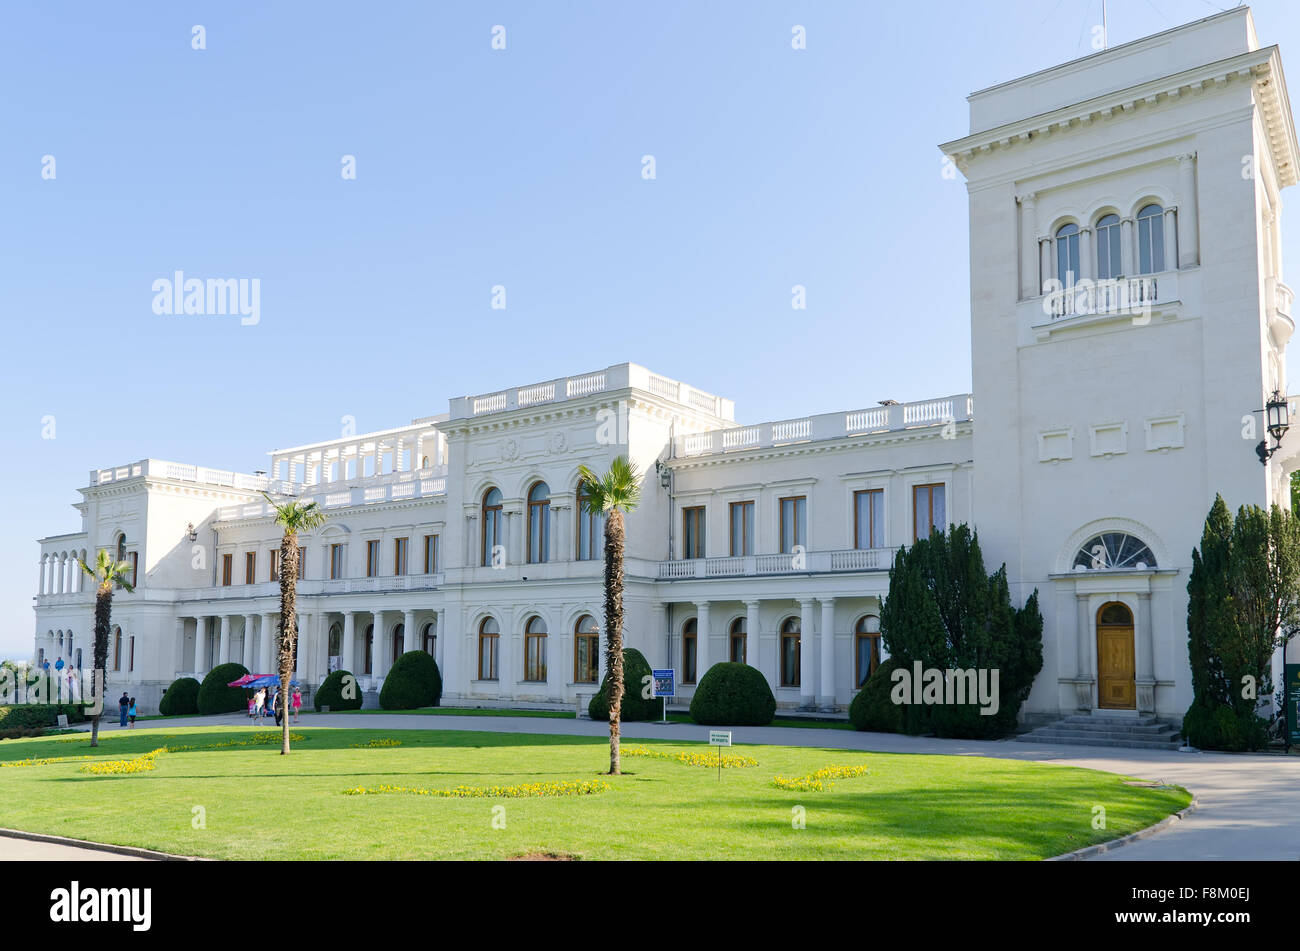 Livadia palace, Crimea, Ukraine. Location of the historic Yalta Conference at the end of World War II. - Stock Image